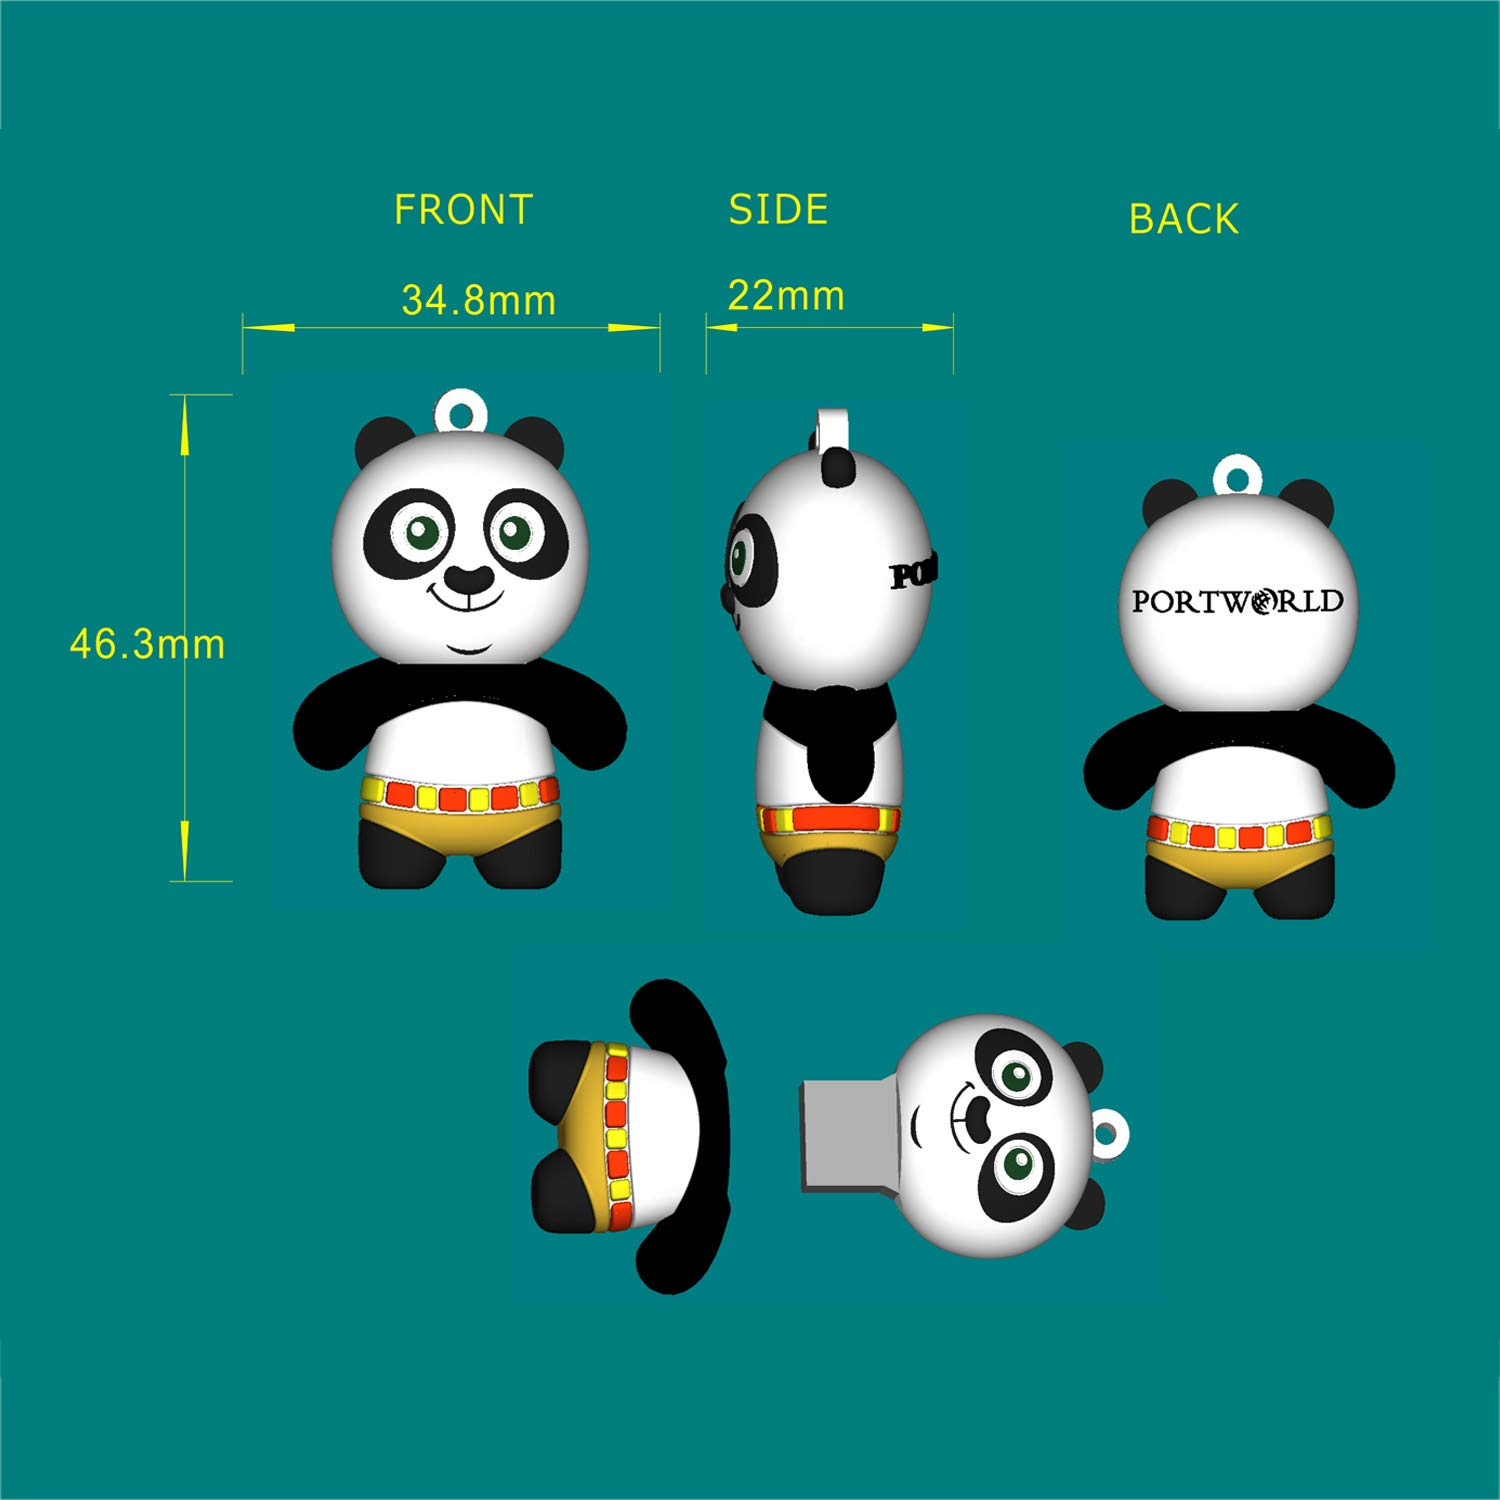 16GB Cartoon Flash Drive USB 2.0 Cute Animal Thumb Drive Jump Drive Memory Stick with Keychain for Friends, Panda